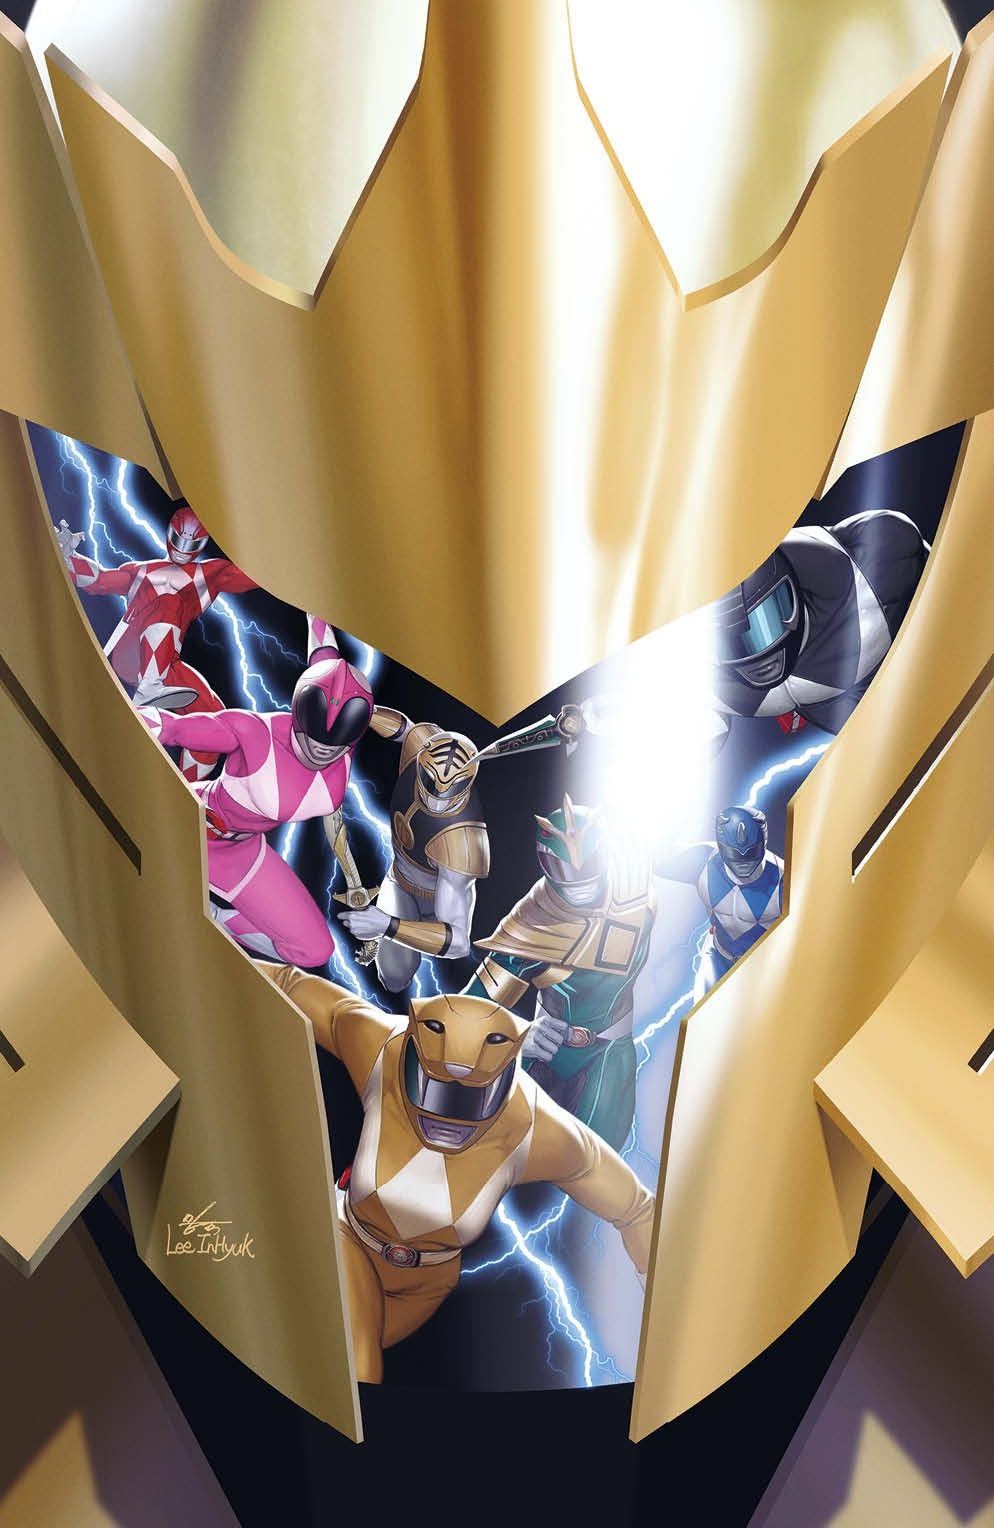 MightyMorphin_012_Cover_C_Variant_Undressed ComicList Previews: MIGHTY MORPHIN #12